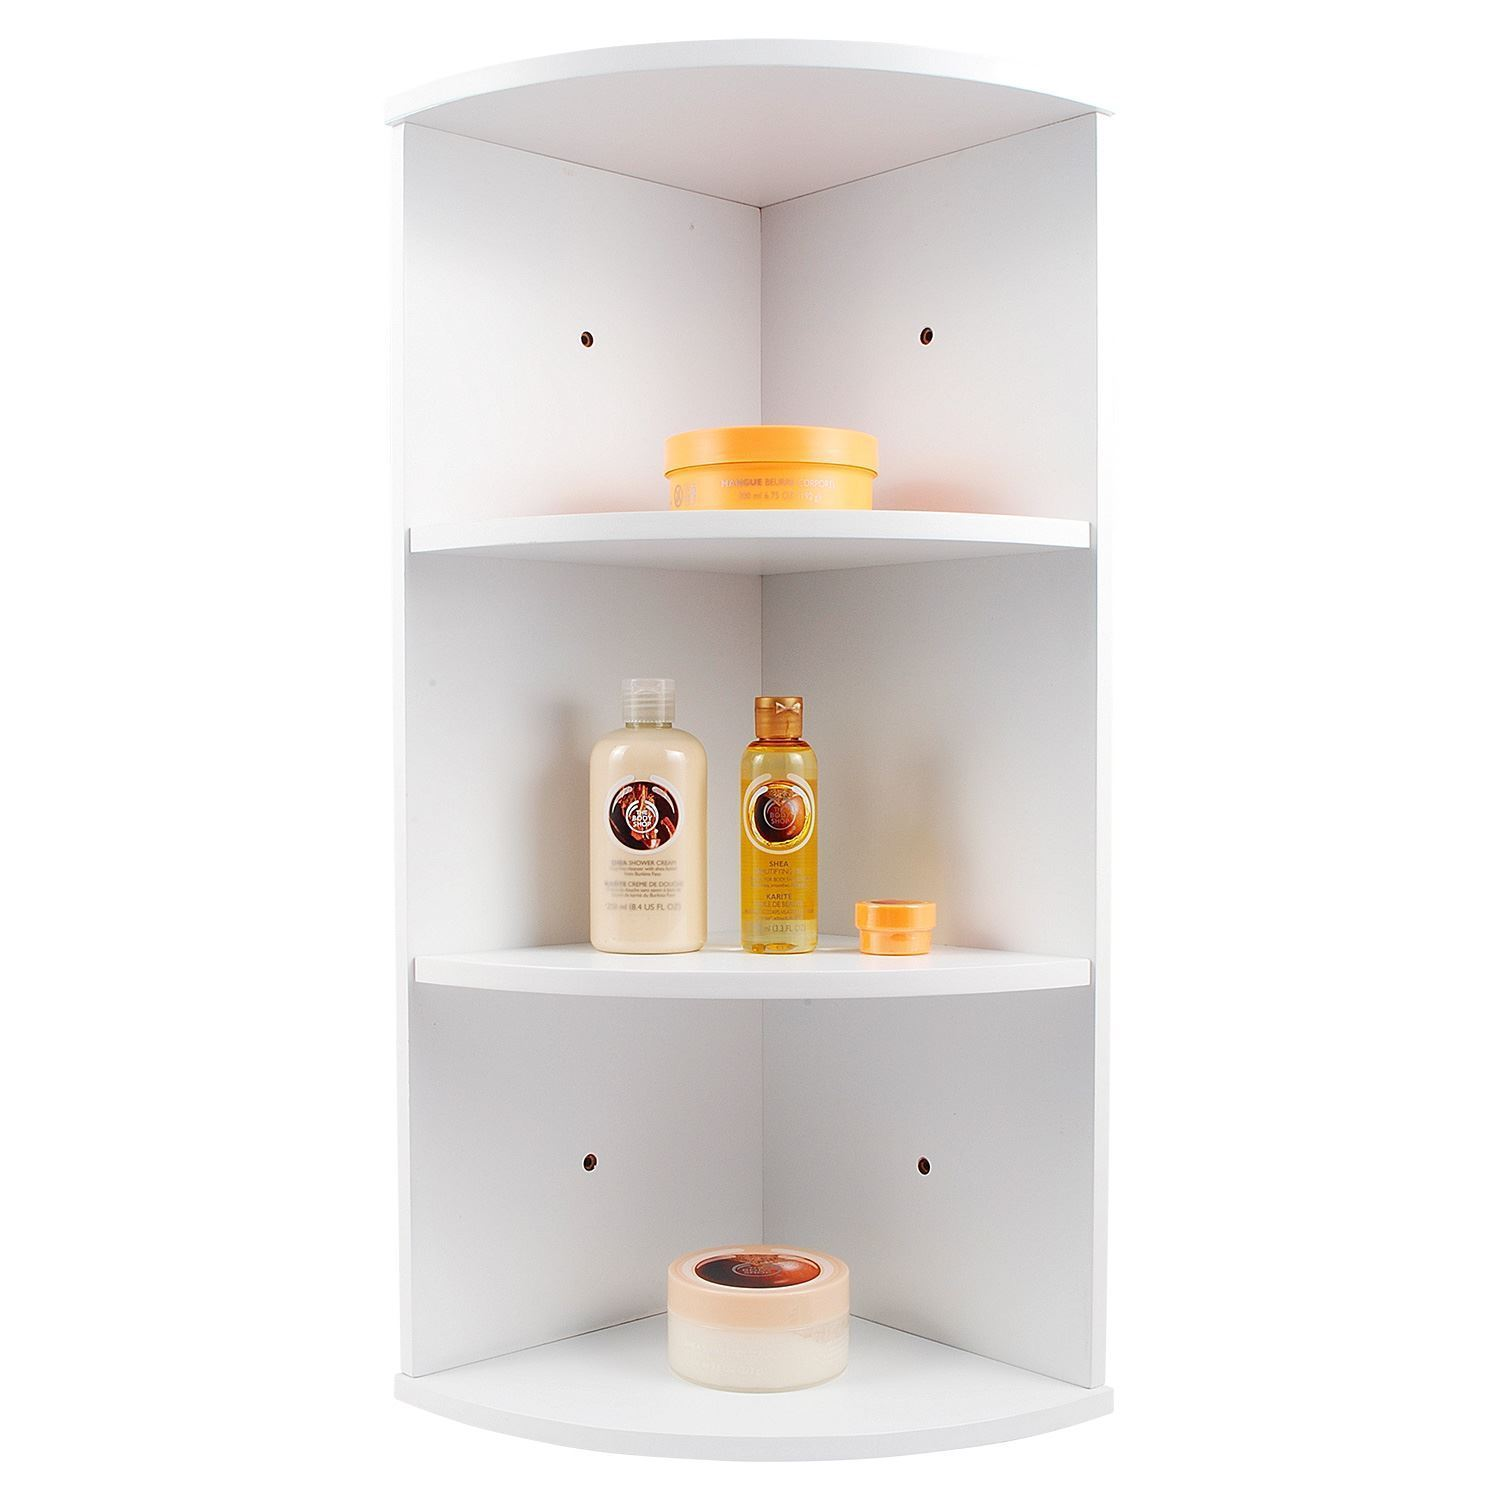 Whiite wooden 3 tier corner wall mounted bathroom storage - Wall mounted bathroom storage units ...